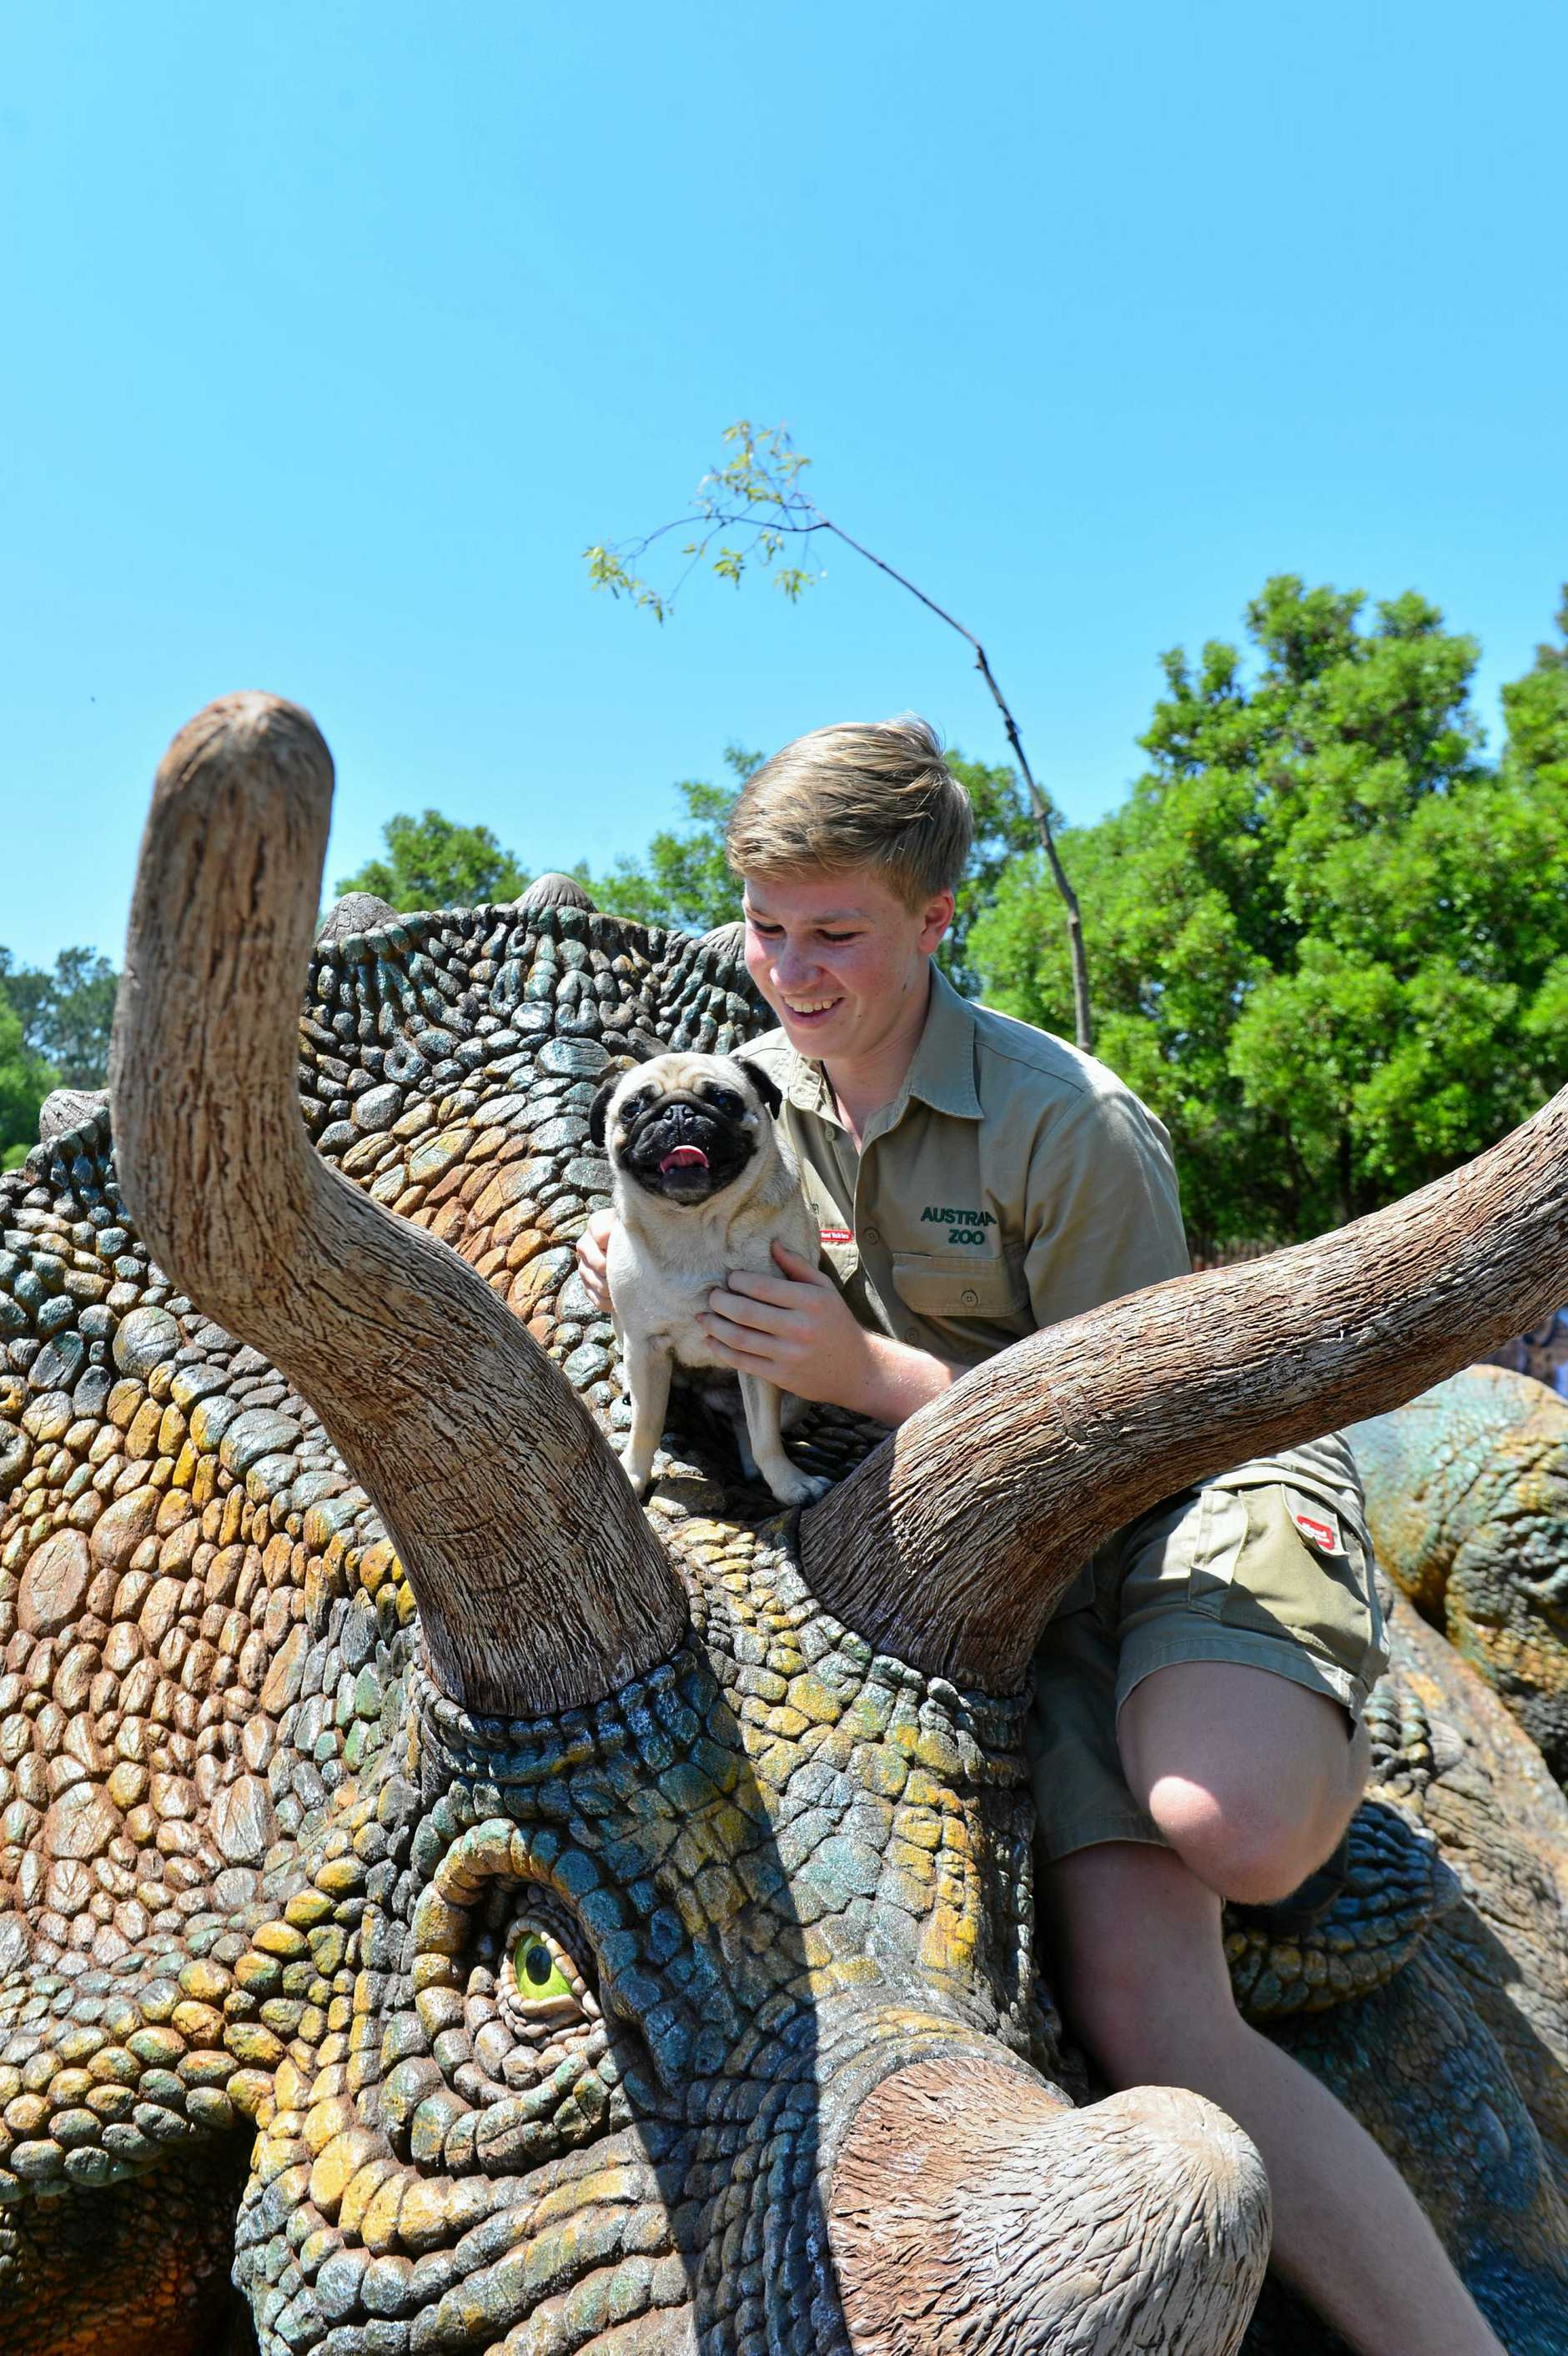 Robert Irwin celebrates his 15th birthday at Australia Zoo with a triceratops.